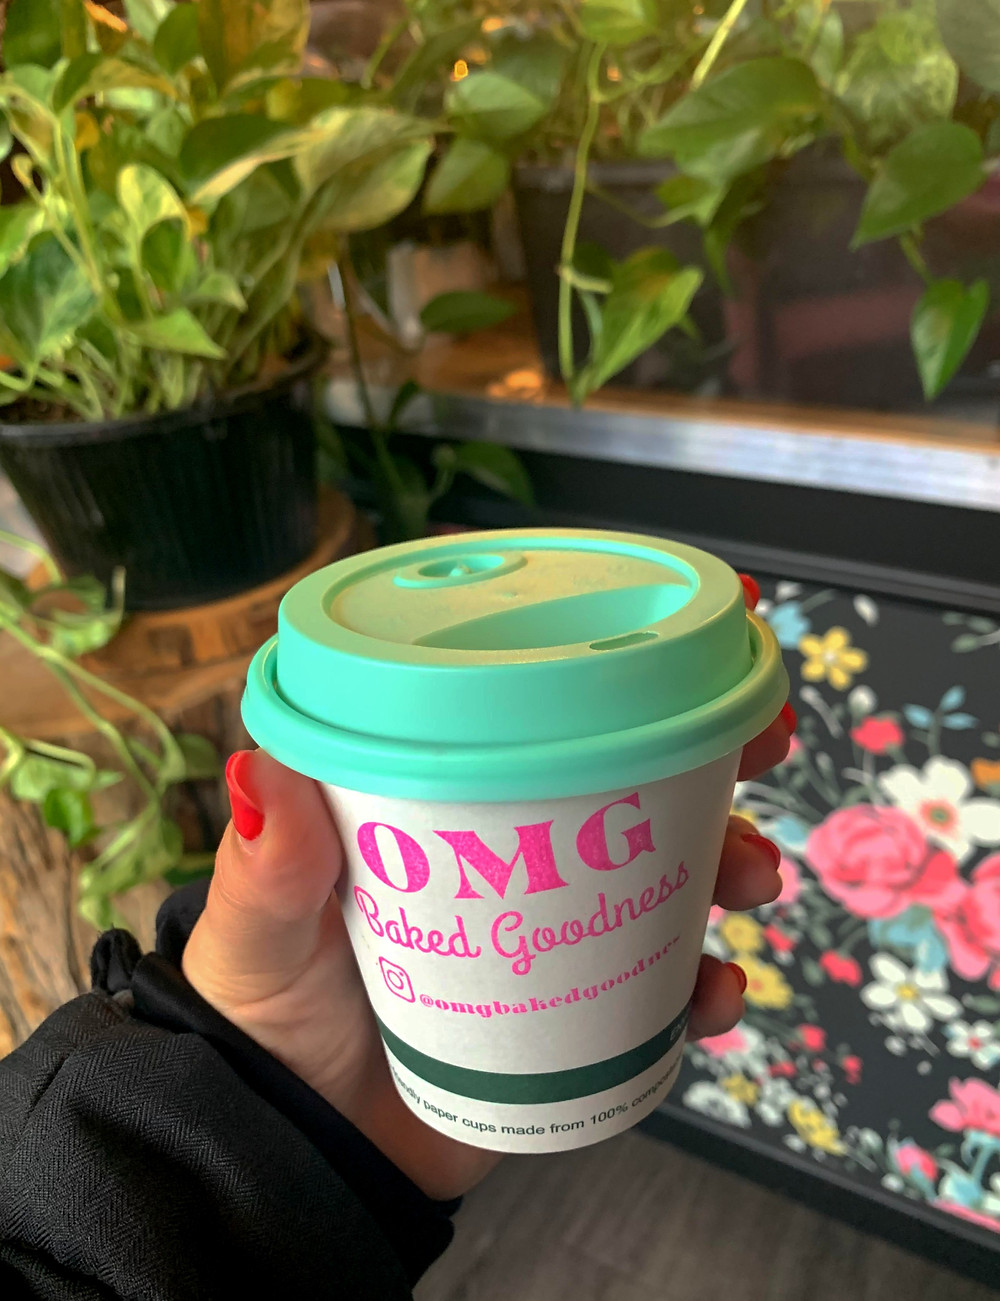 Coffee cup and plants at OMG Baked Goodness Toronto